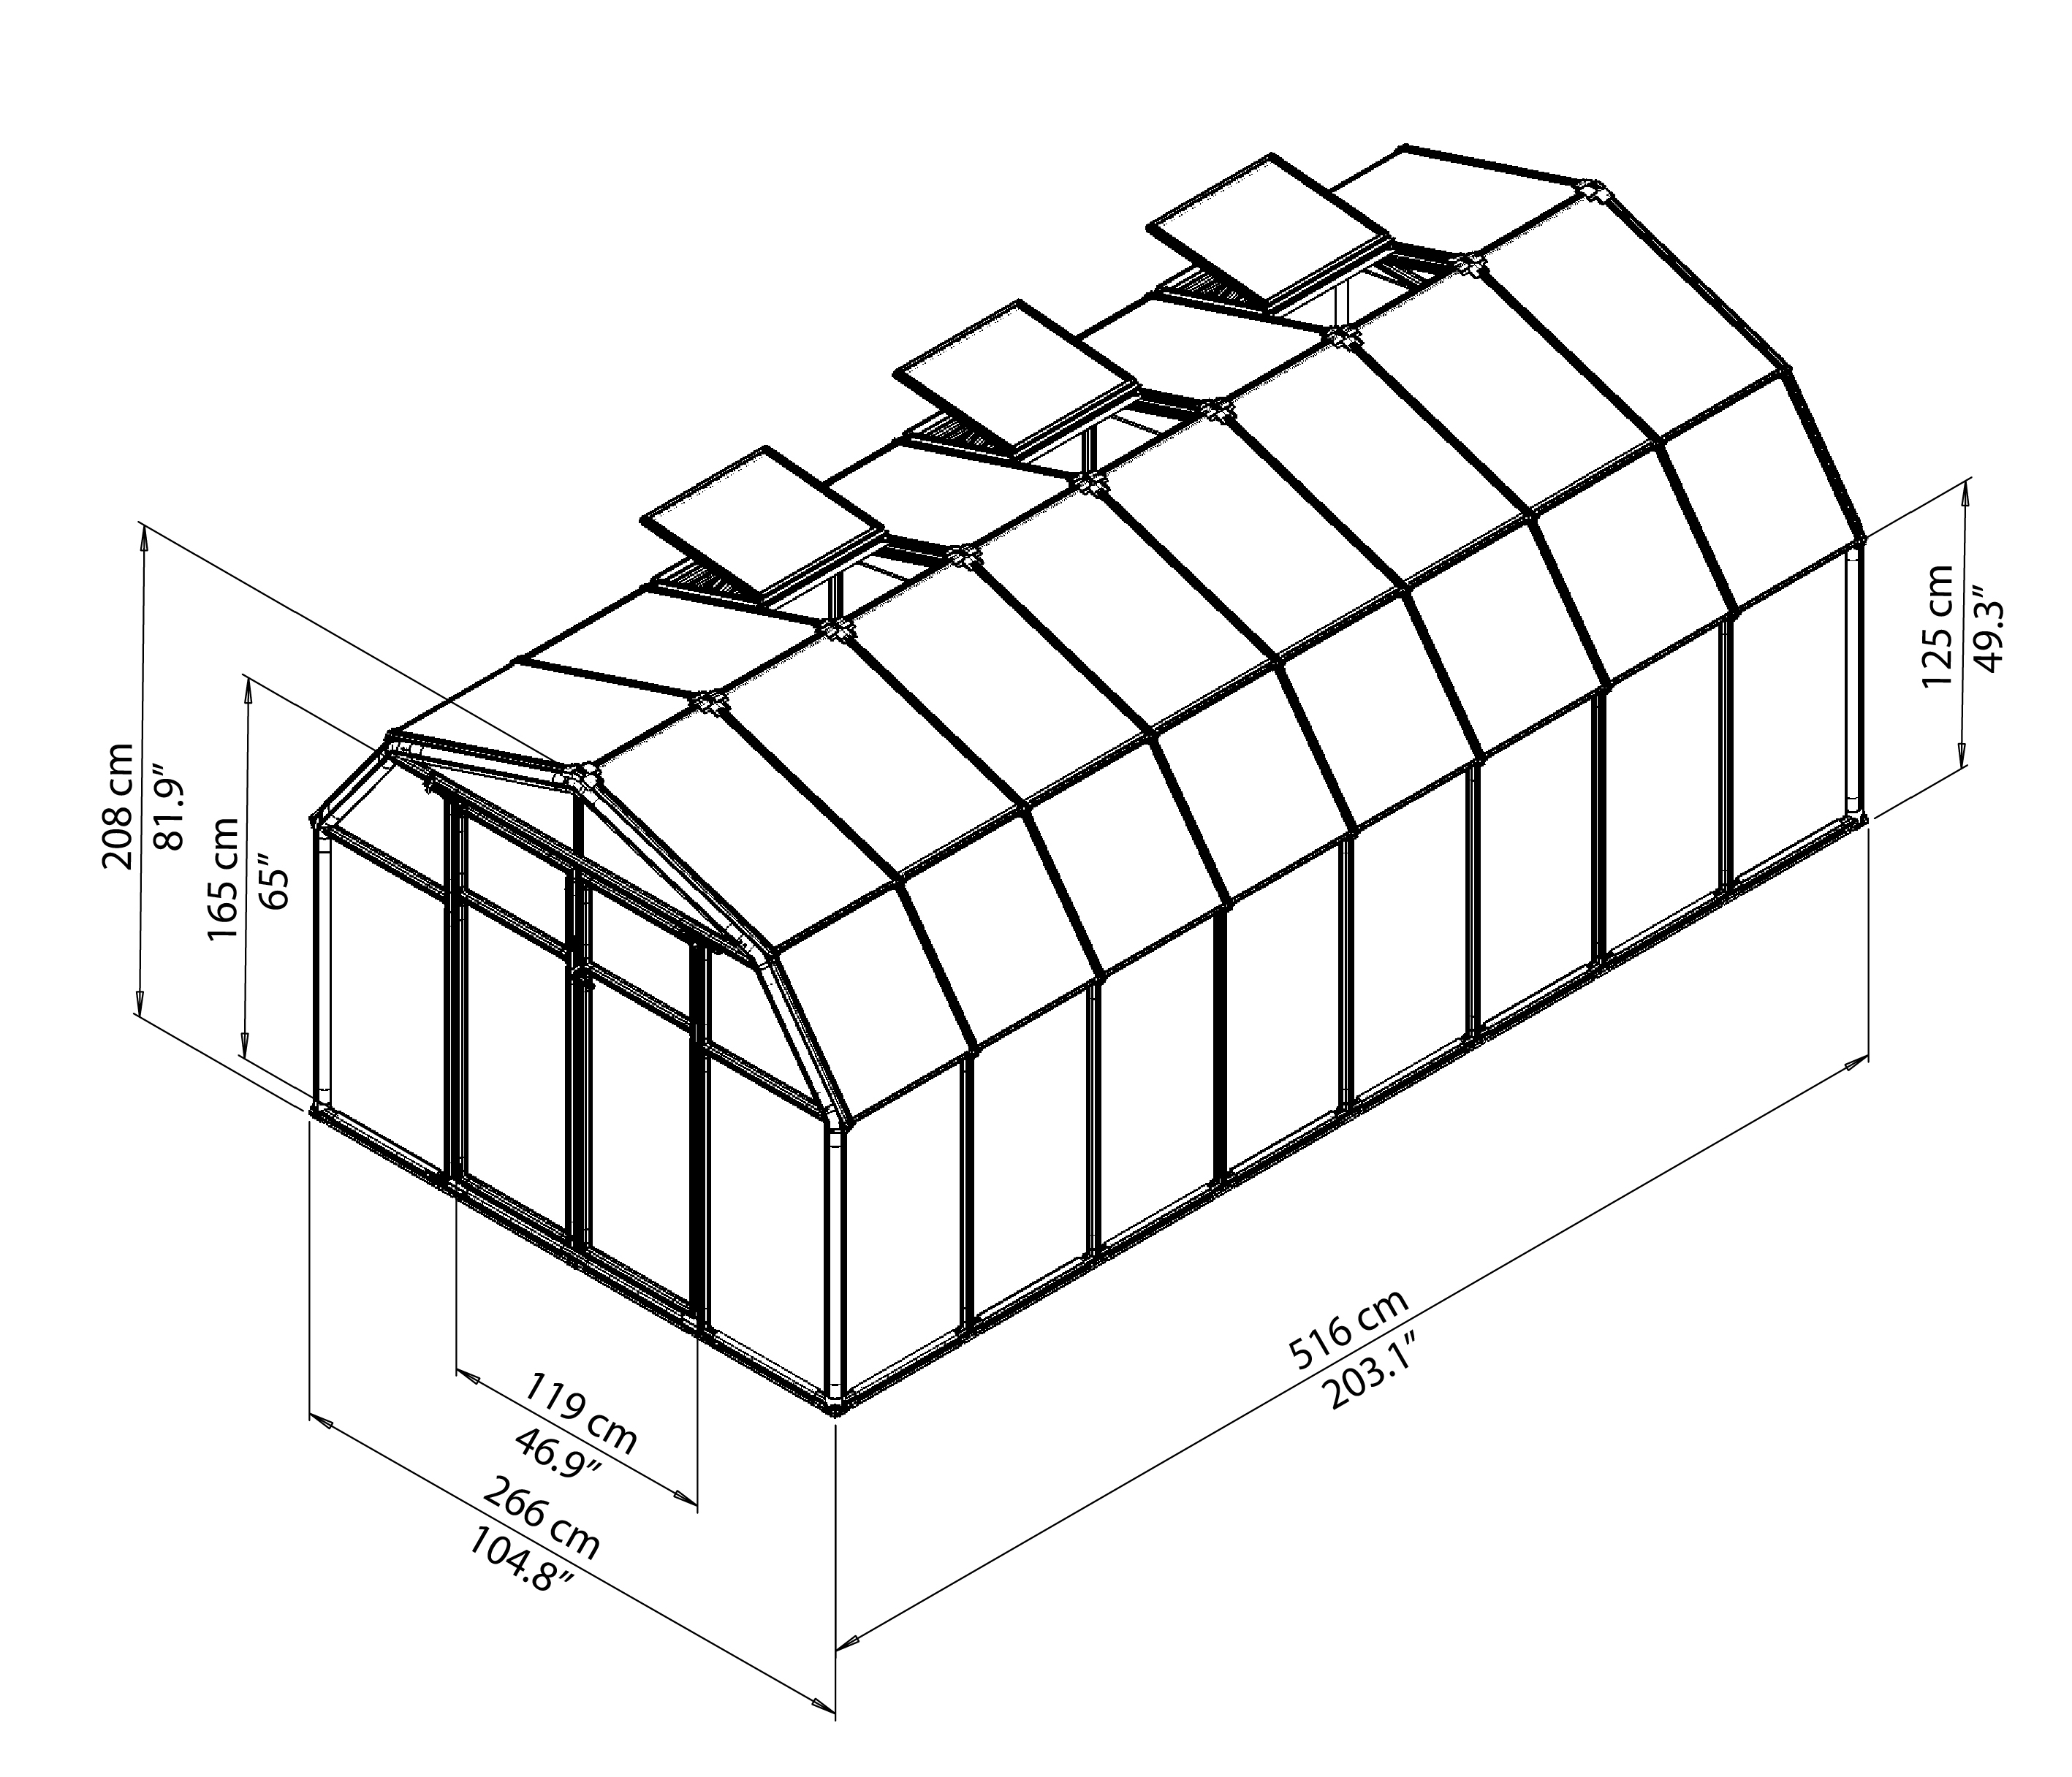 rion-greenhouses-hobbygardener-8x16-drawing-isoview.jpg